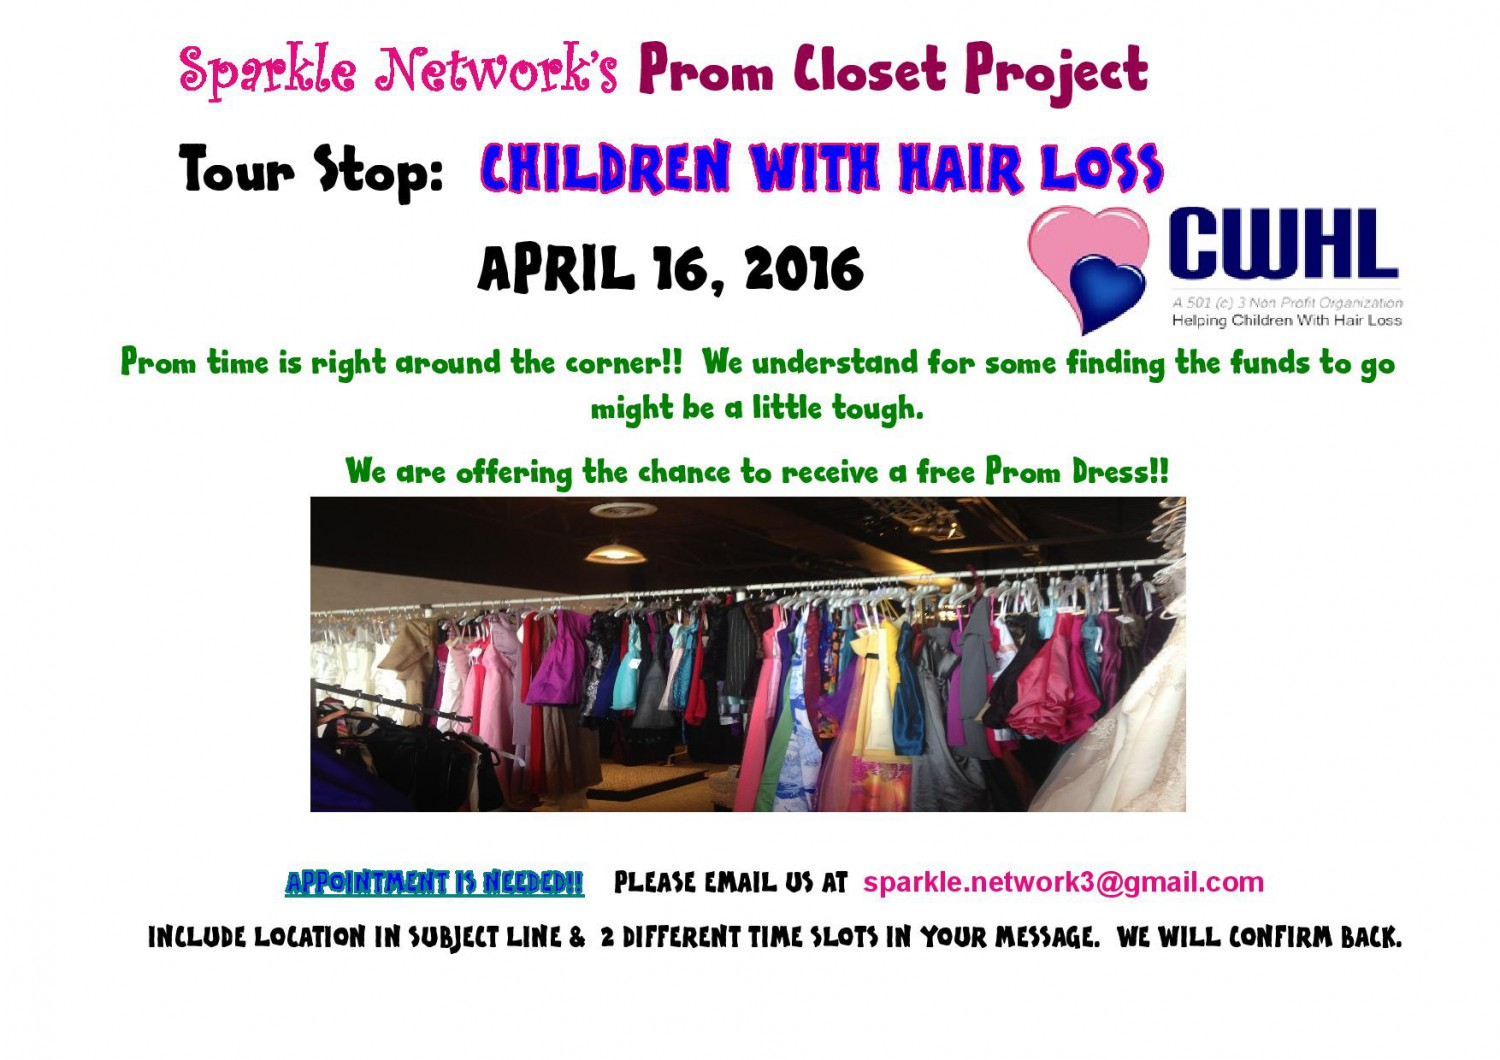 cropped-prom-closet-project-children-with-hair-loss-stop-page-001.jpg